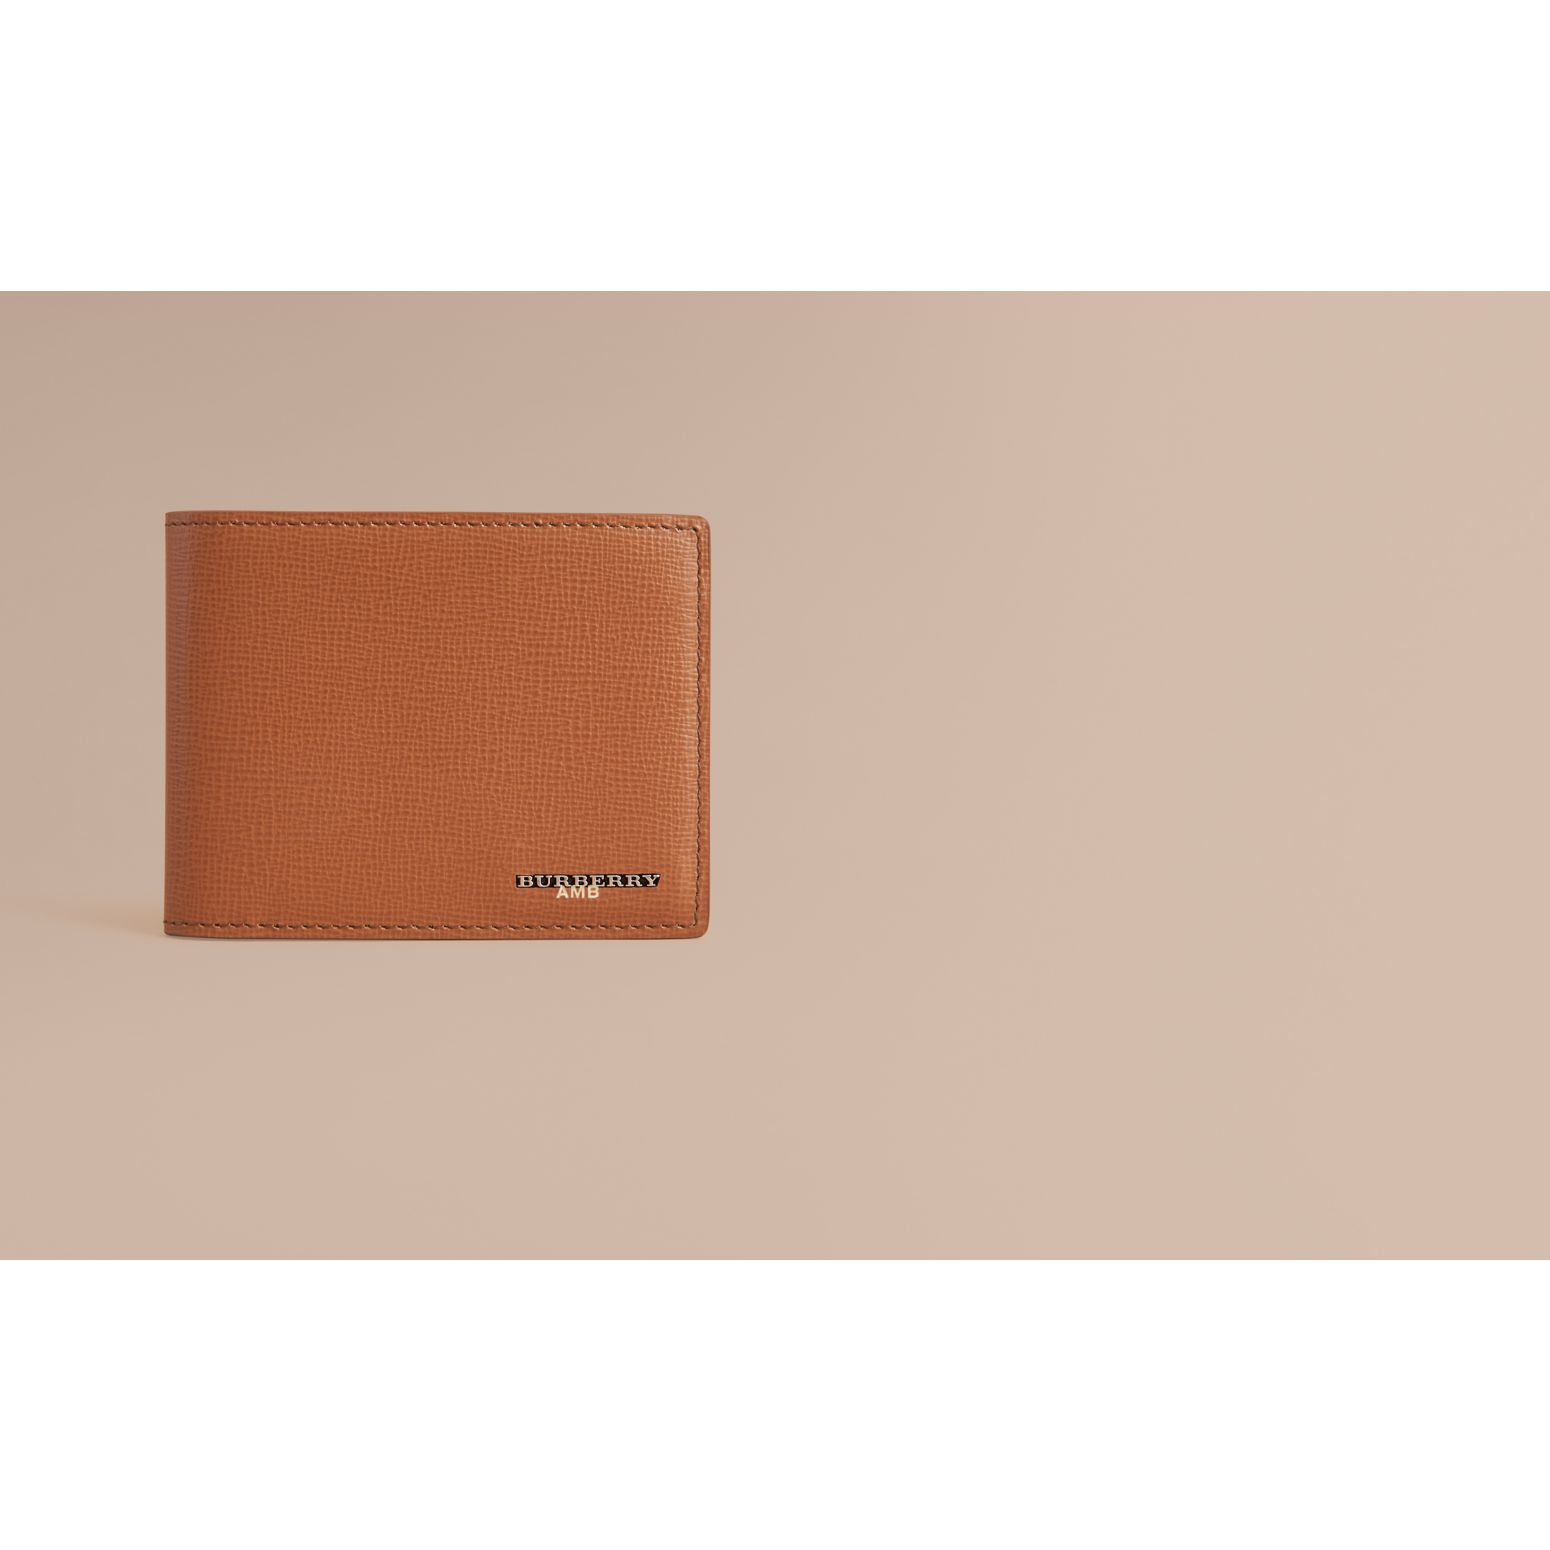 London Leather Bifold Wallet in Tan - gallery image 2